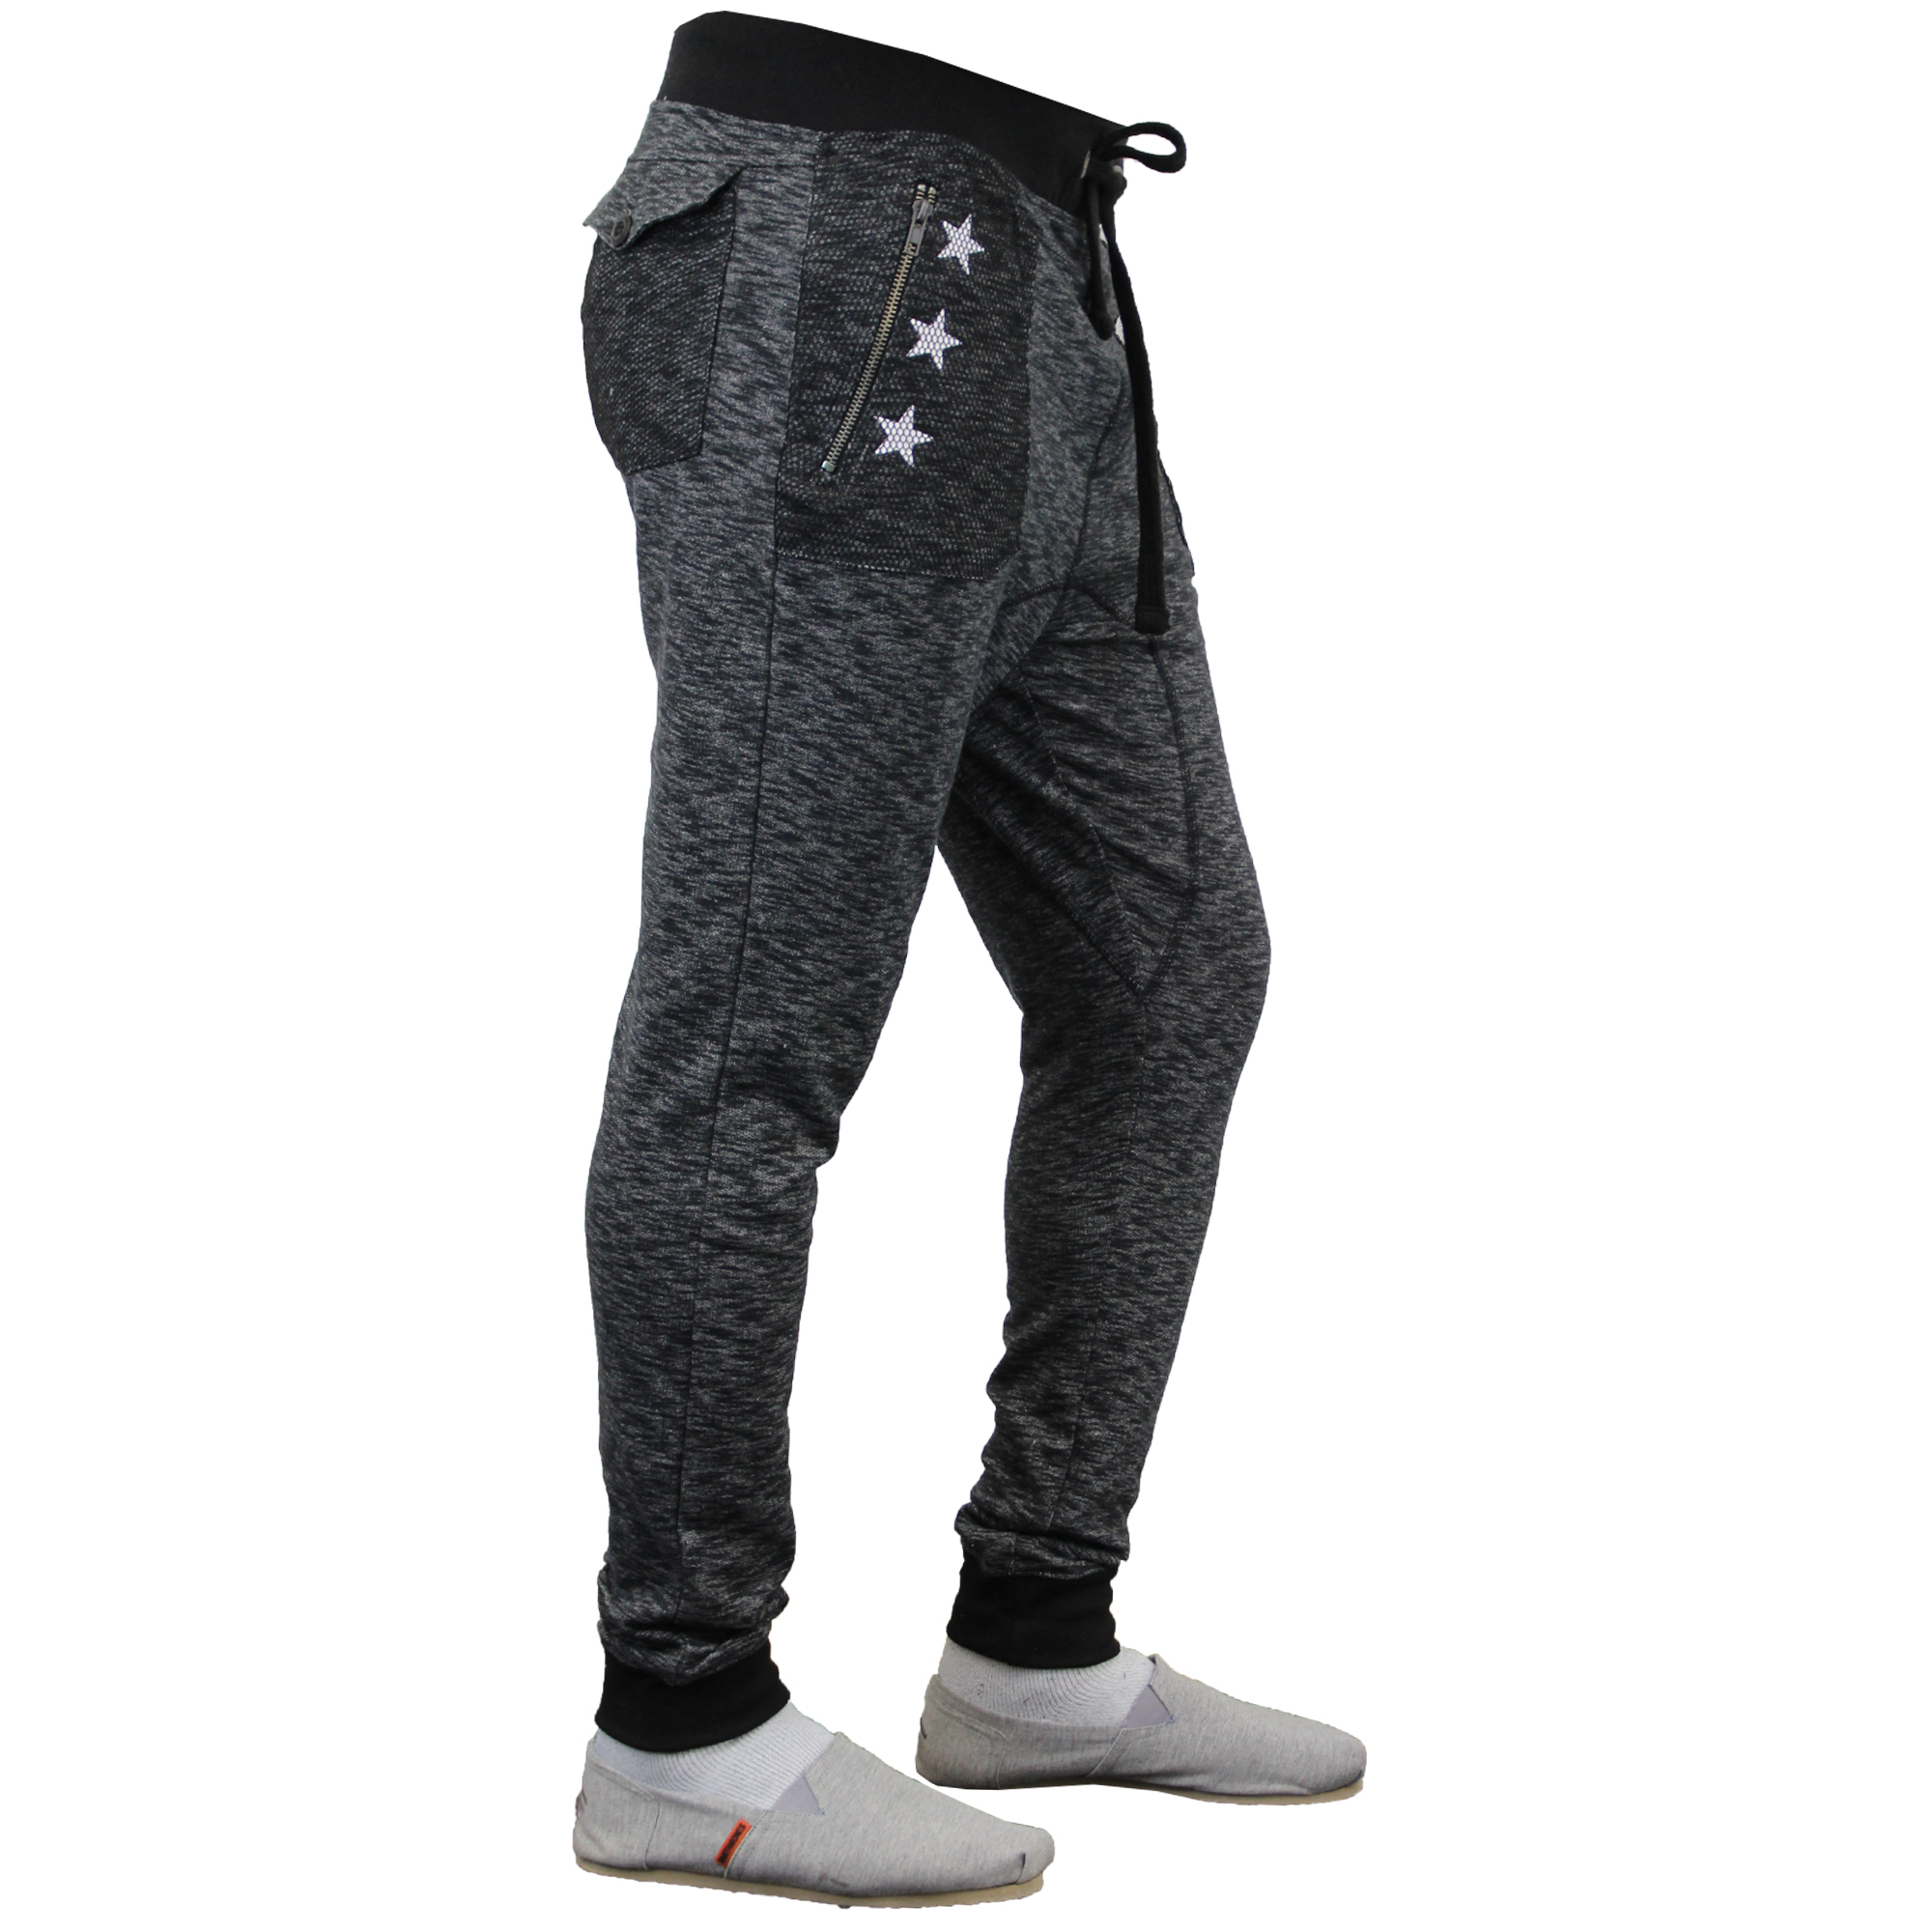 Mens Bottoms Soul Star Sweatshirt Hooded Top Trousers Pants Slim Fit NYC Mesh